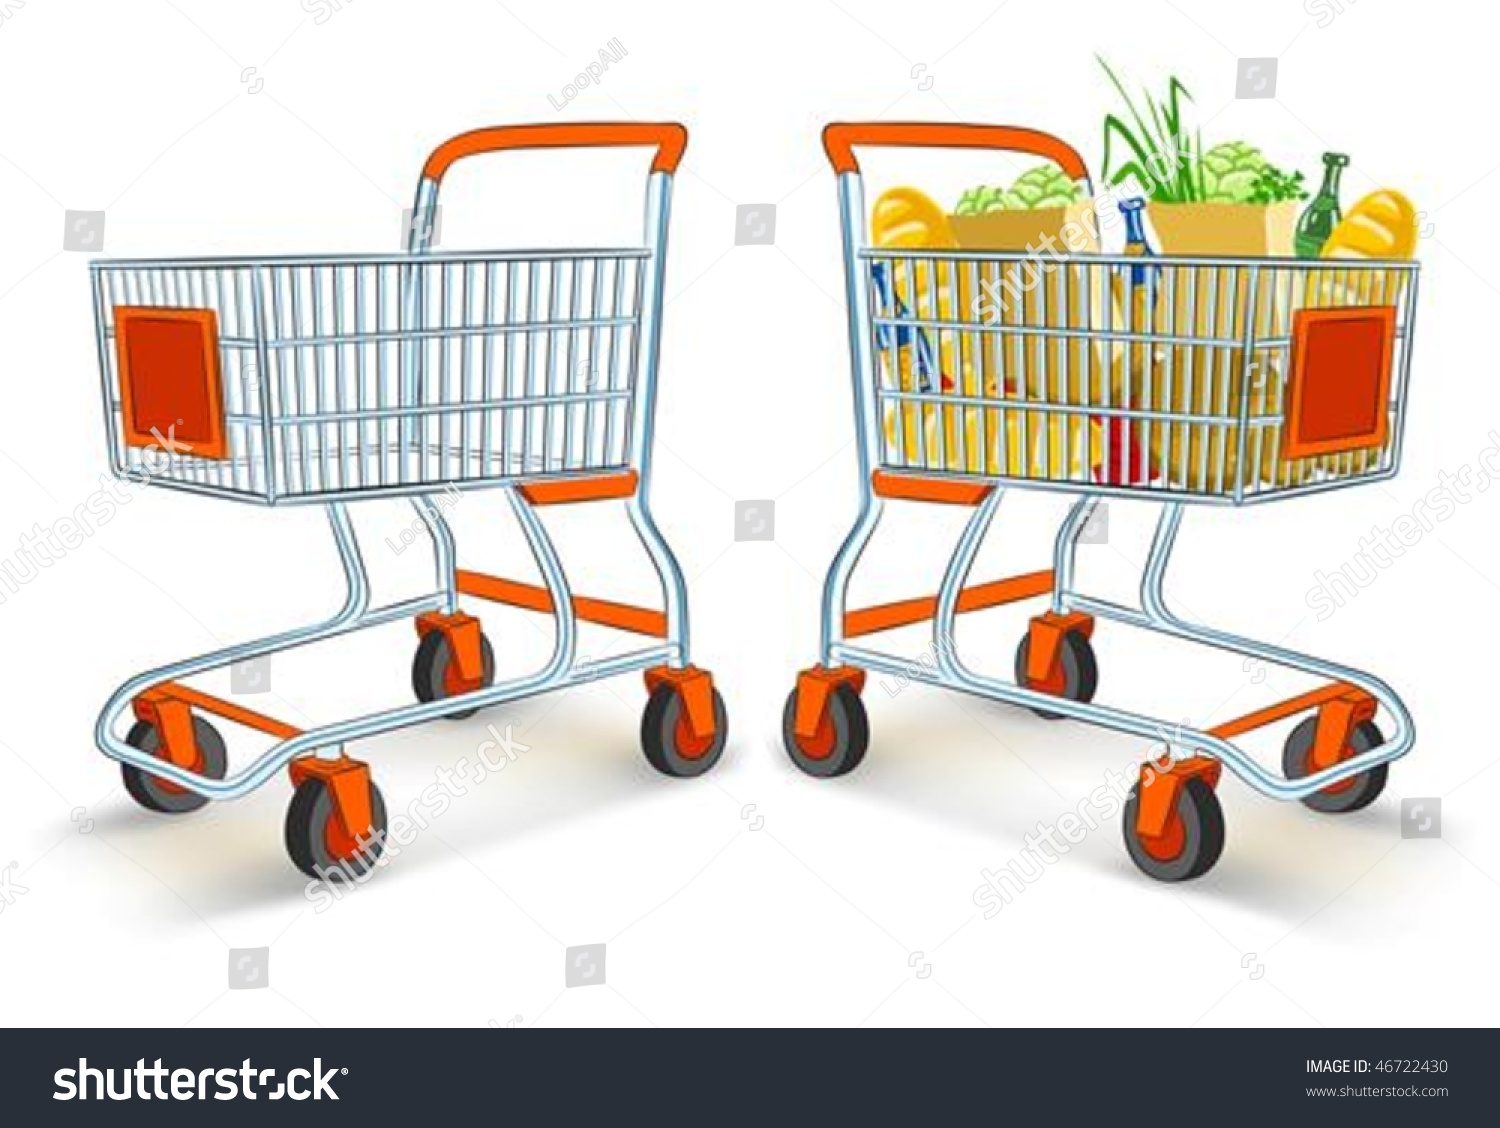 Worksheet Full And Empty full and empty shopping carts from supermarket store vector illustration isolated on white background 46722430 shutterstock